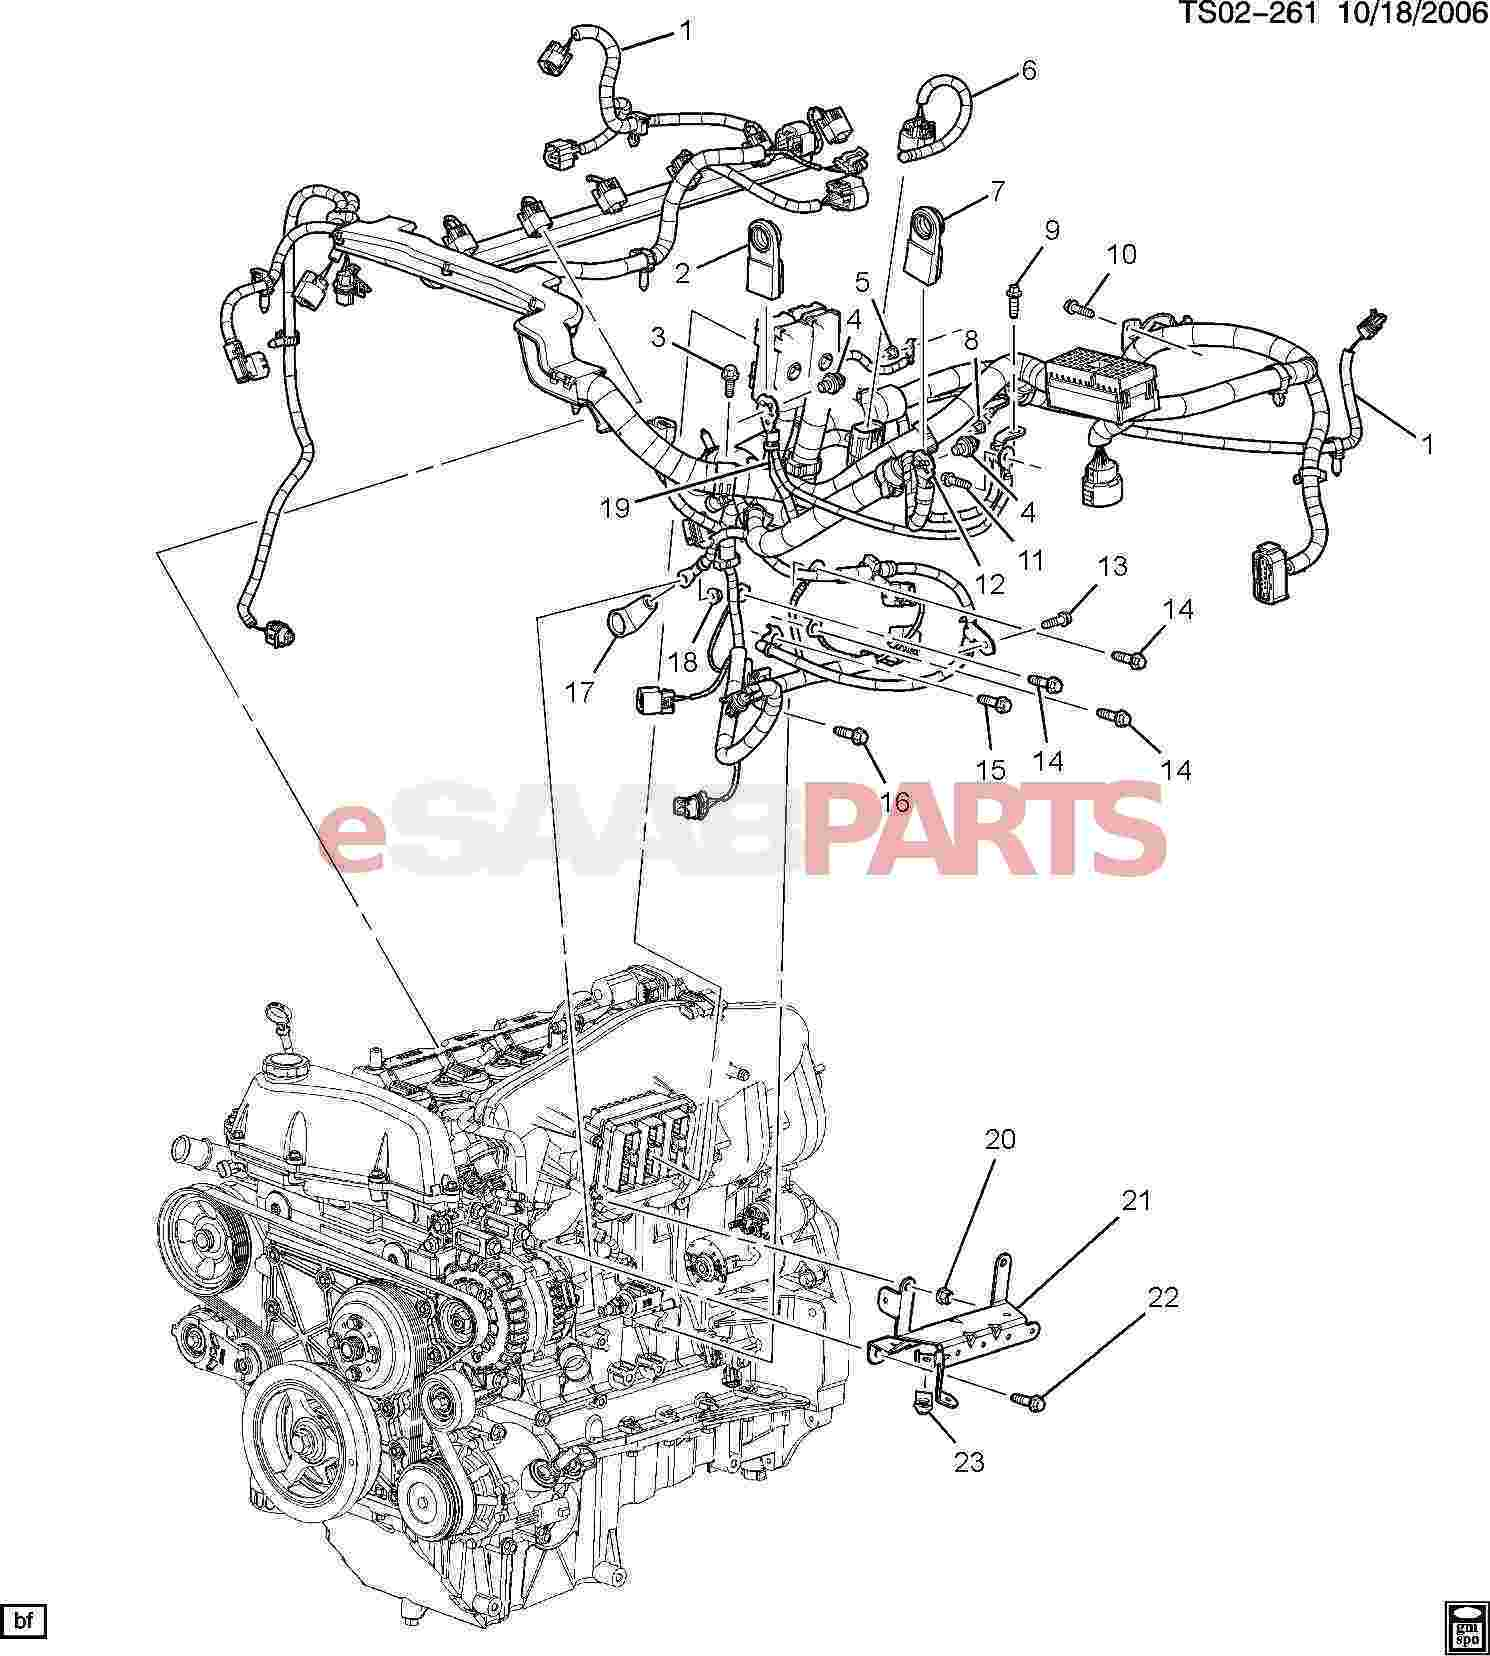 hight resolution of esaabparts com saab 9 7x electrical parts wiring harness wiring harness engine 4 2s